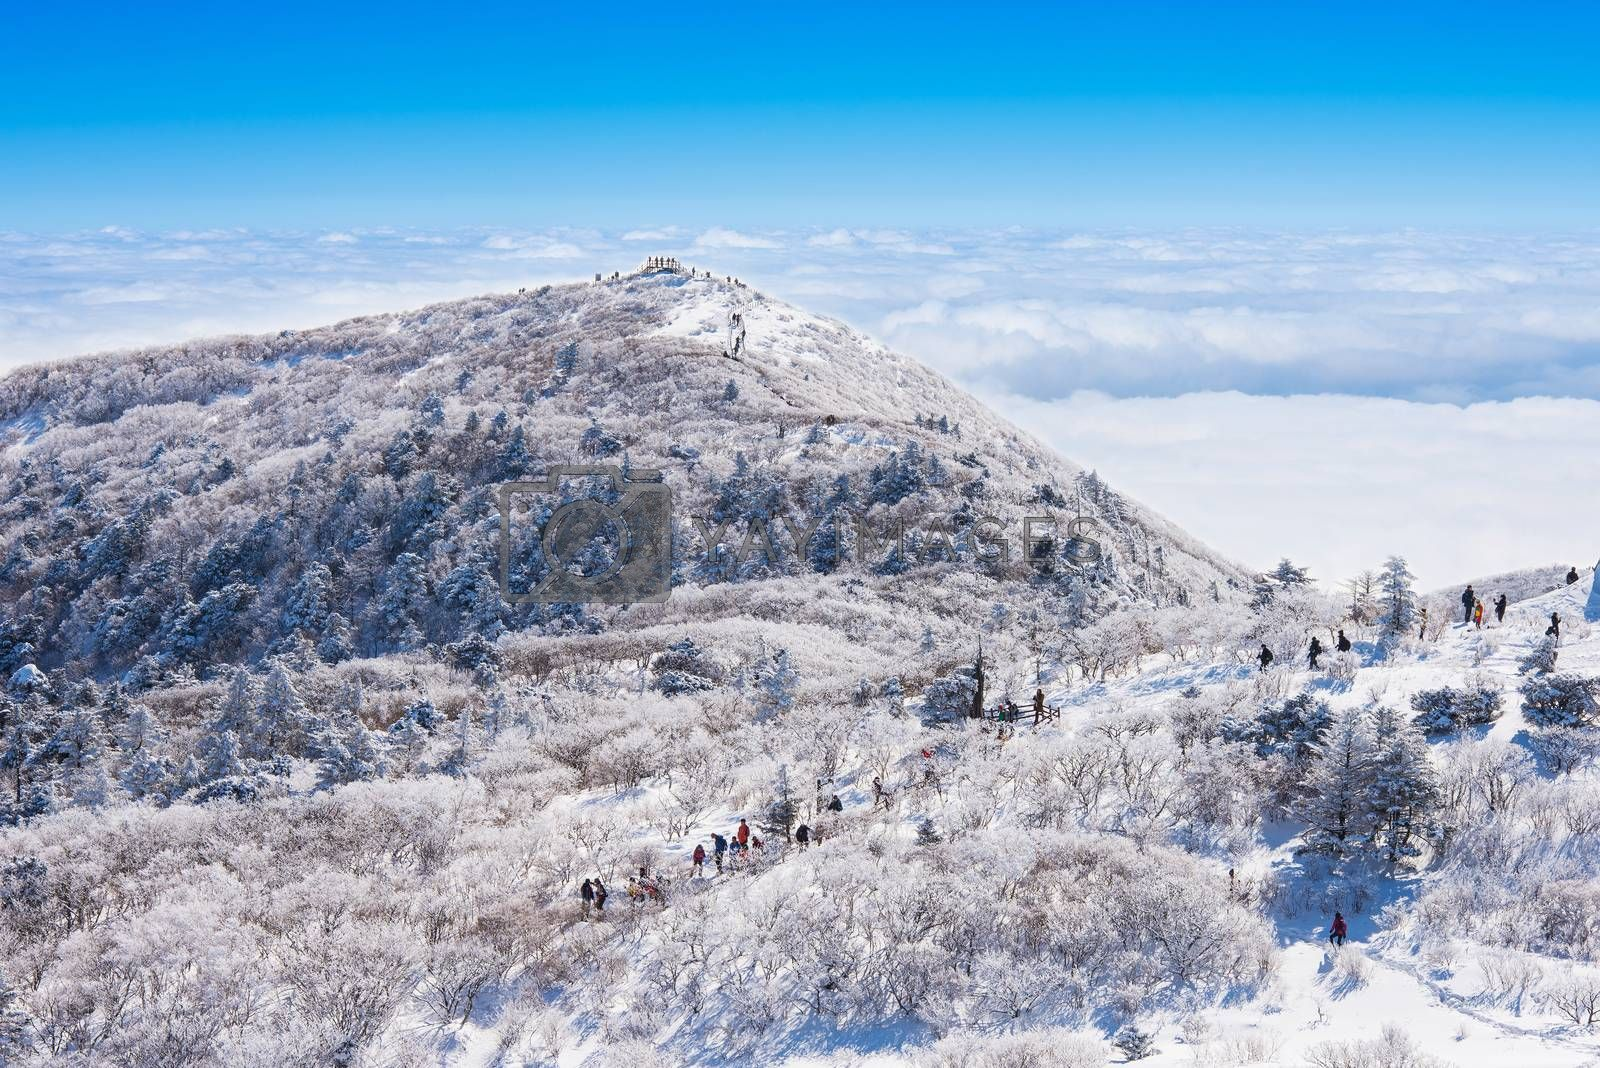 Landscape in winter,The highest point of mountain in Korea